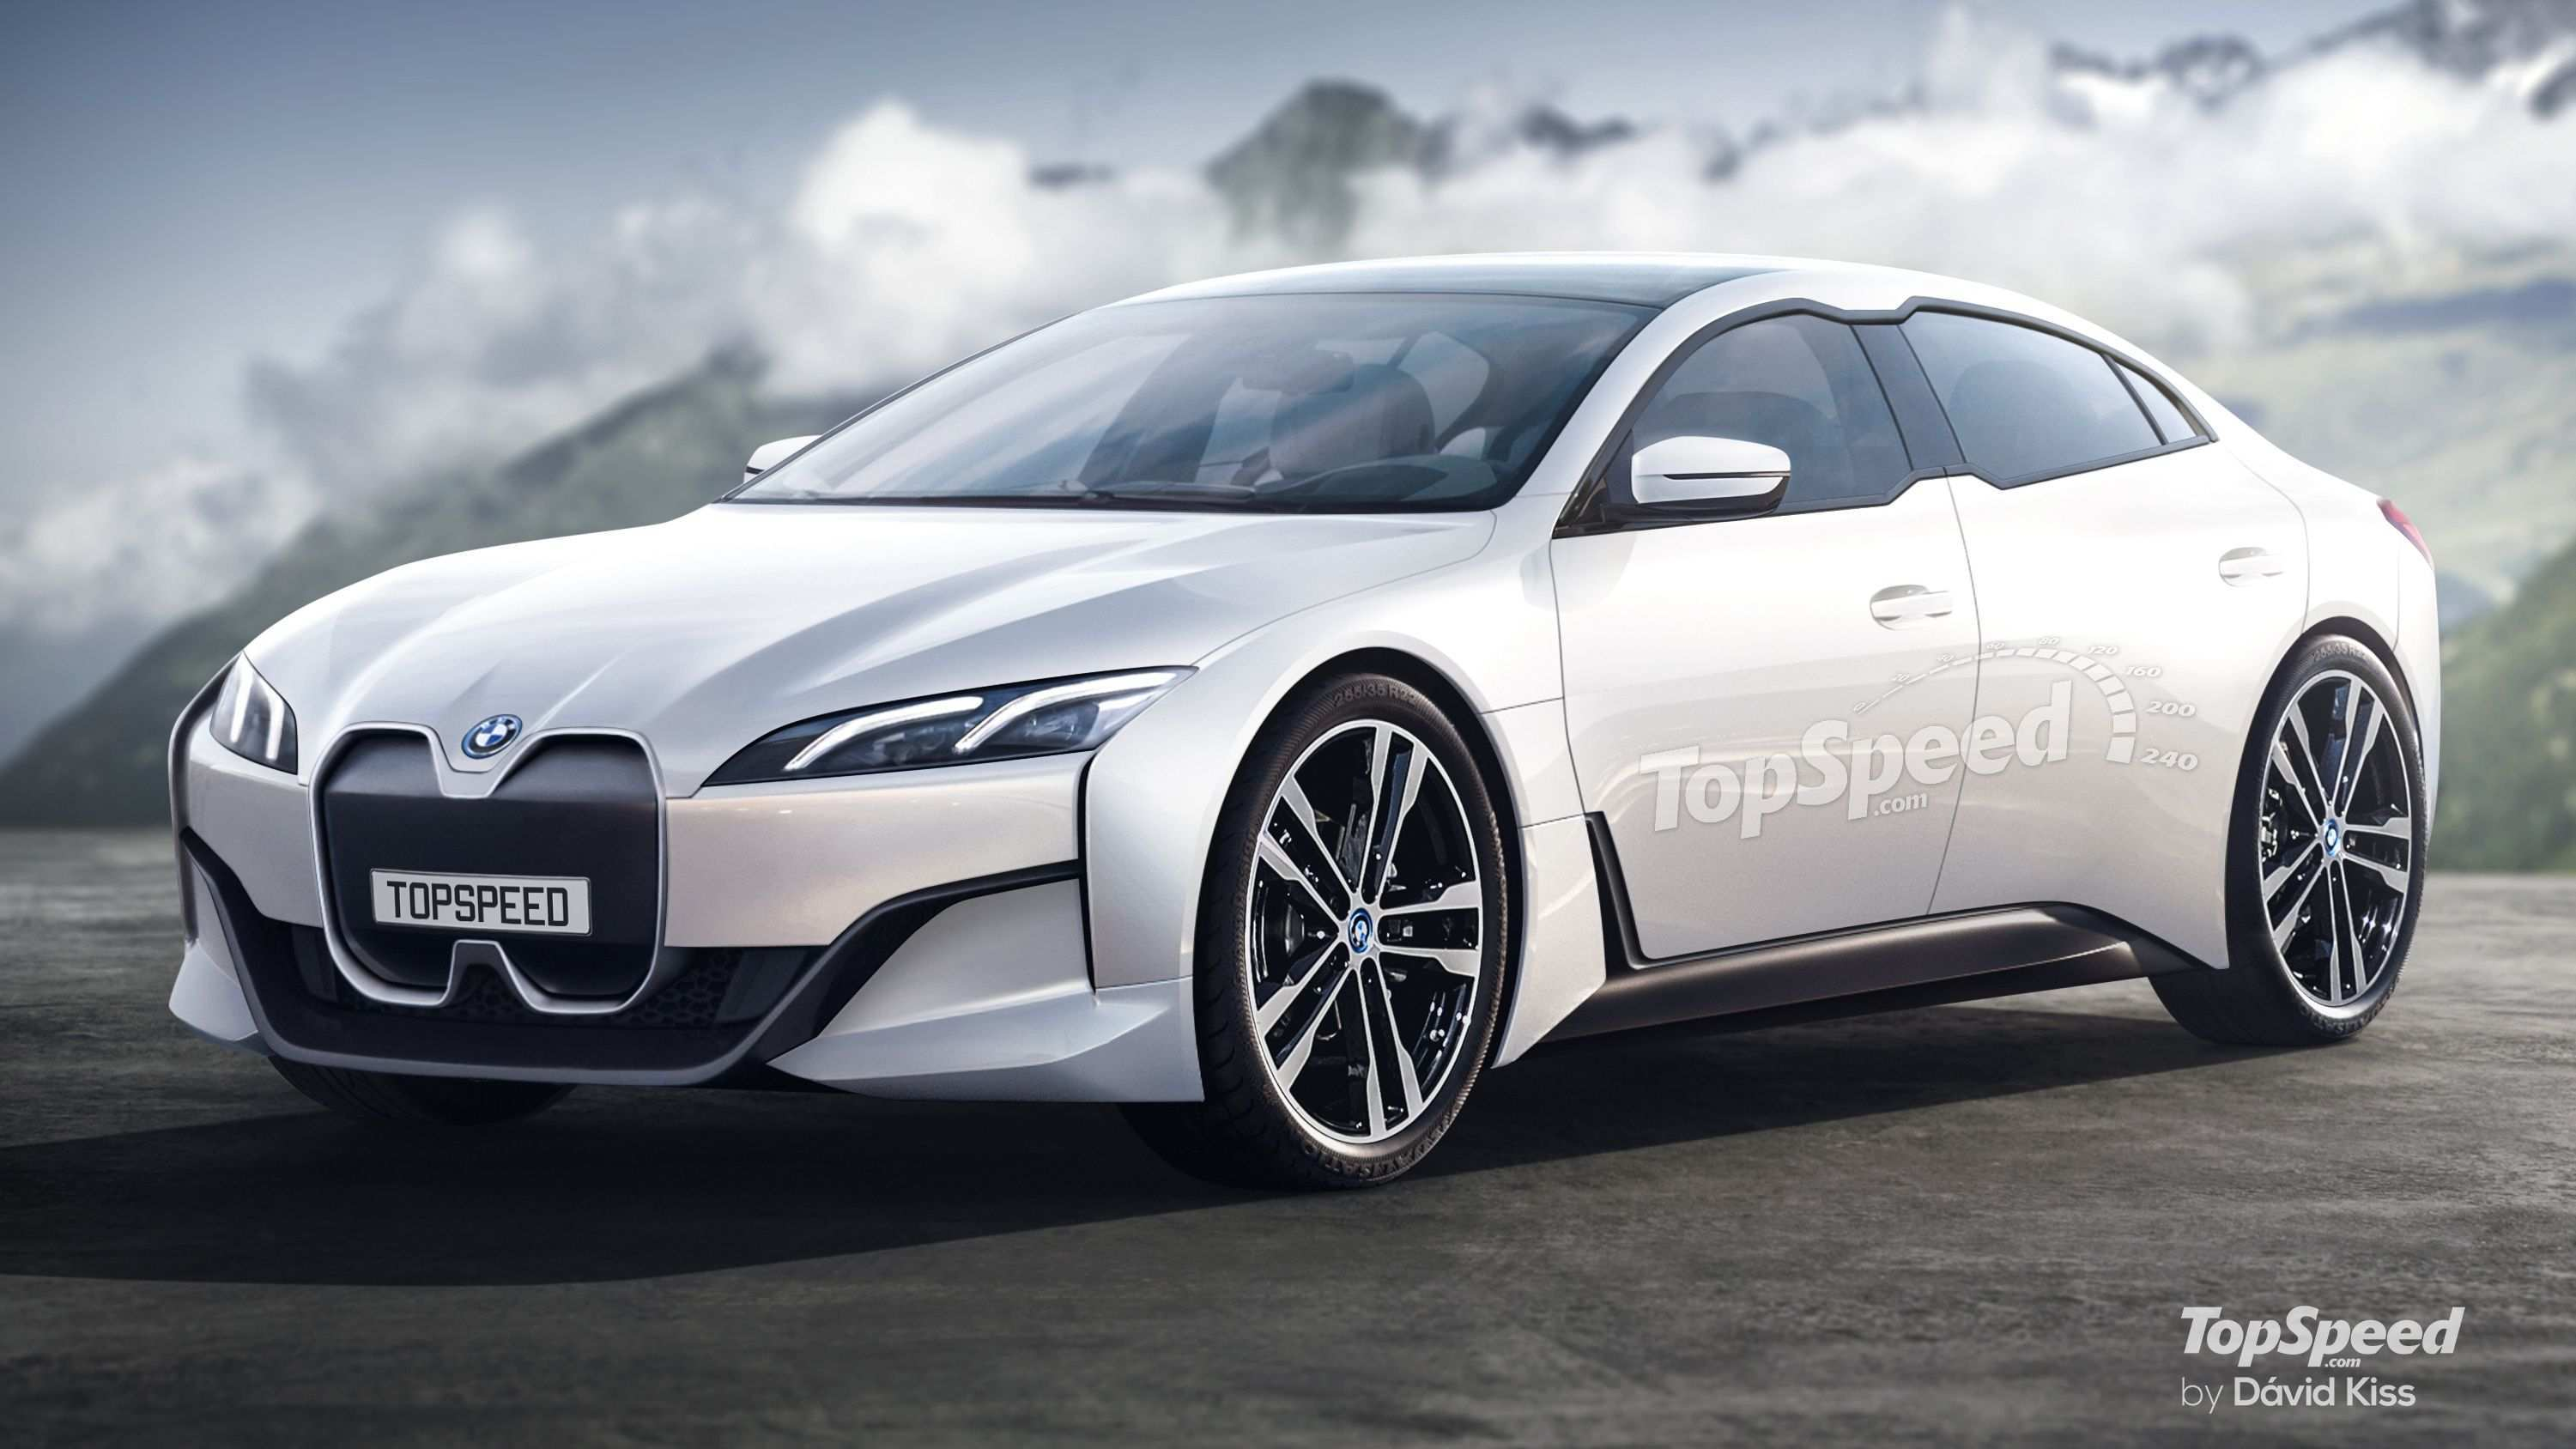 58 Gallery of BMW All Cars Electric By 2020 Engine for BMW All Cars Electric By 2020